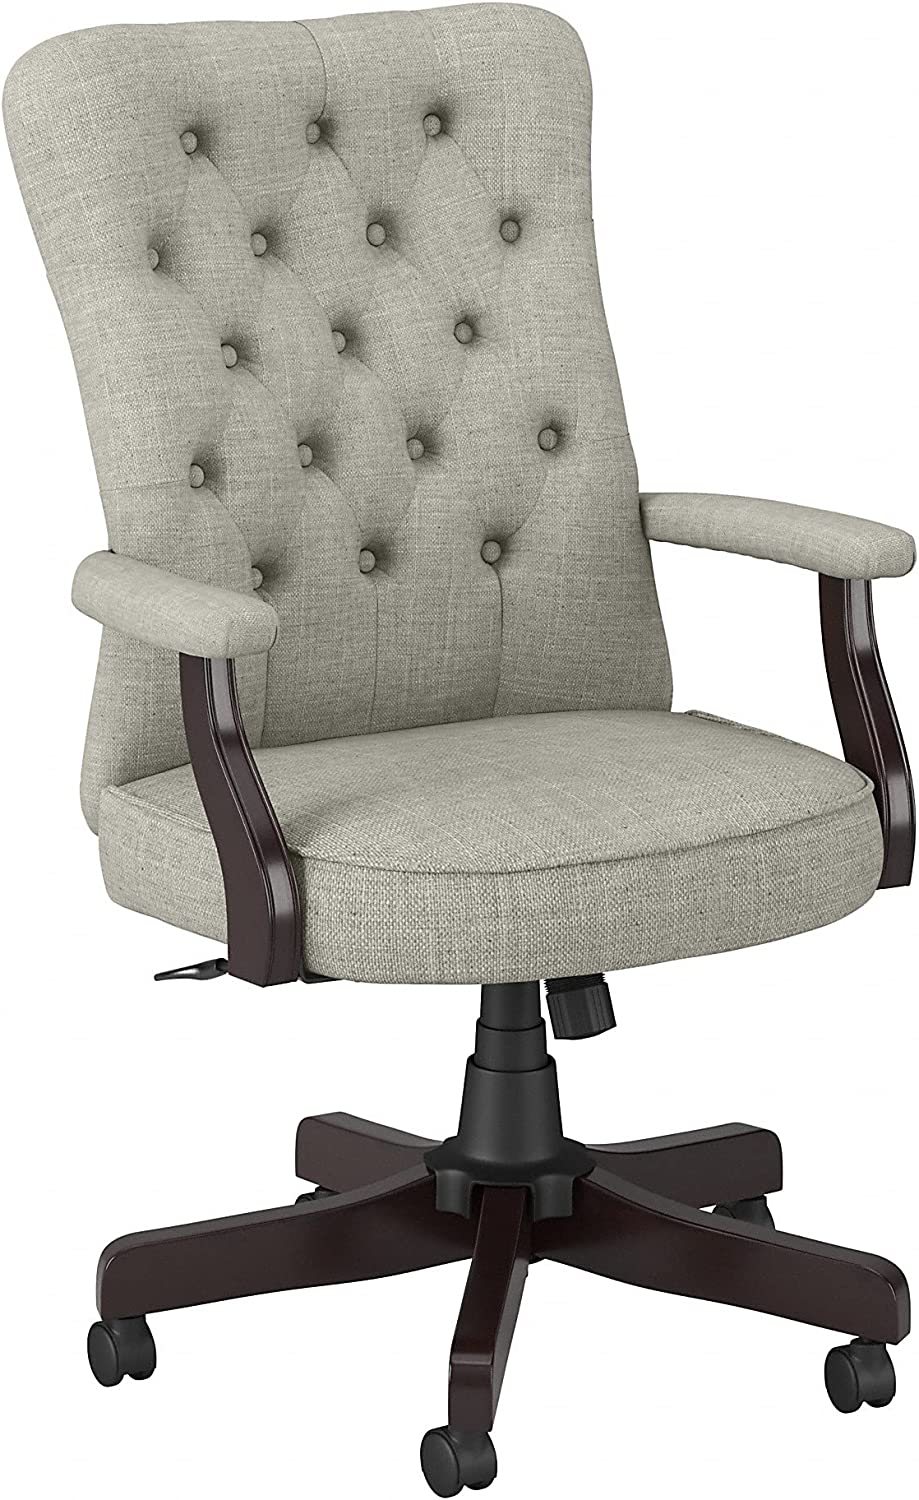 Bush Business Furniture Arden Lane High Back Tufted Office Chair with Arms, Light Gray Fabric